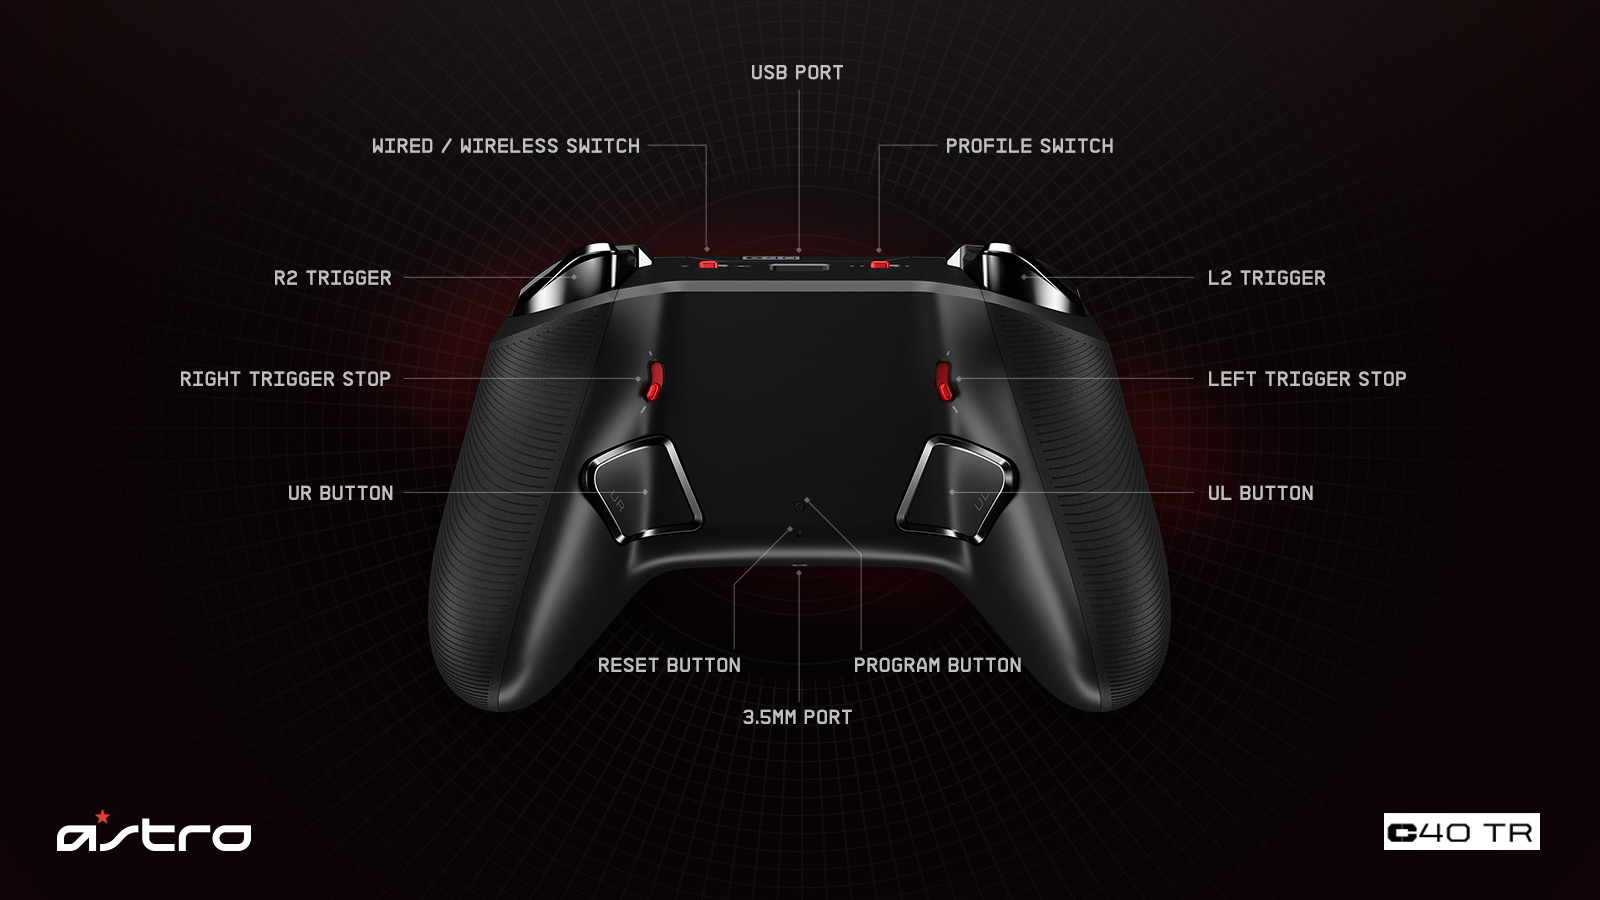 Astro's $199 99 PS4 controller offers 'Elite' levels of